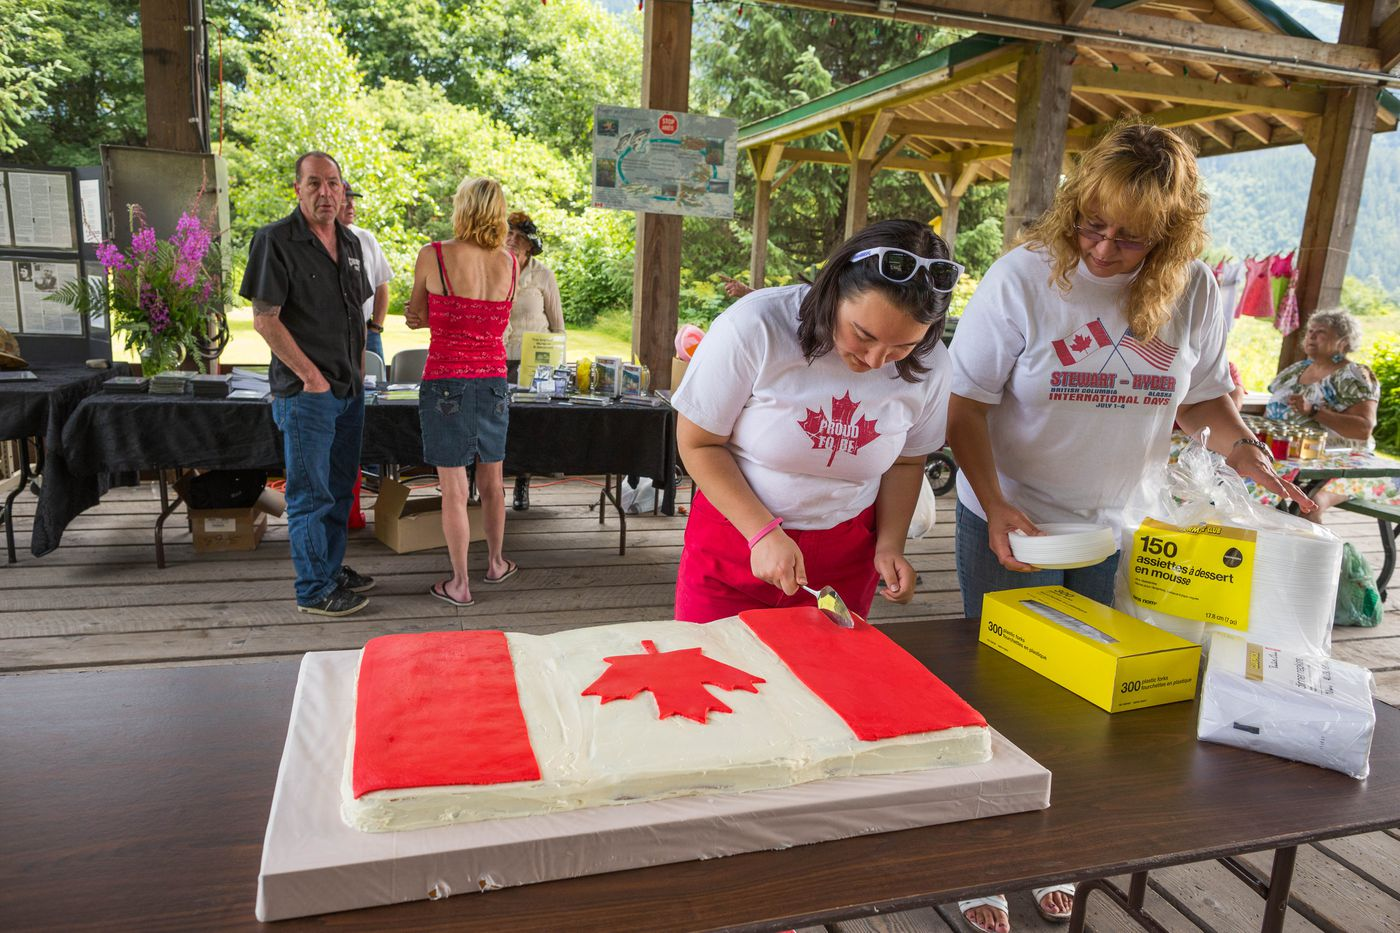 """Former mayor of Stewart, British Columbia Angela Brand Danuser, right, and Jorja Danuser cut the Canada Day cake in Stewart on July 1, 2015. """"We consider ourselves one community,"""" said Brand Danuser. """"We do everything together, and everything that Stewart does, we promote it as Stewart and Hyder."""""""